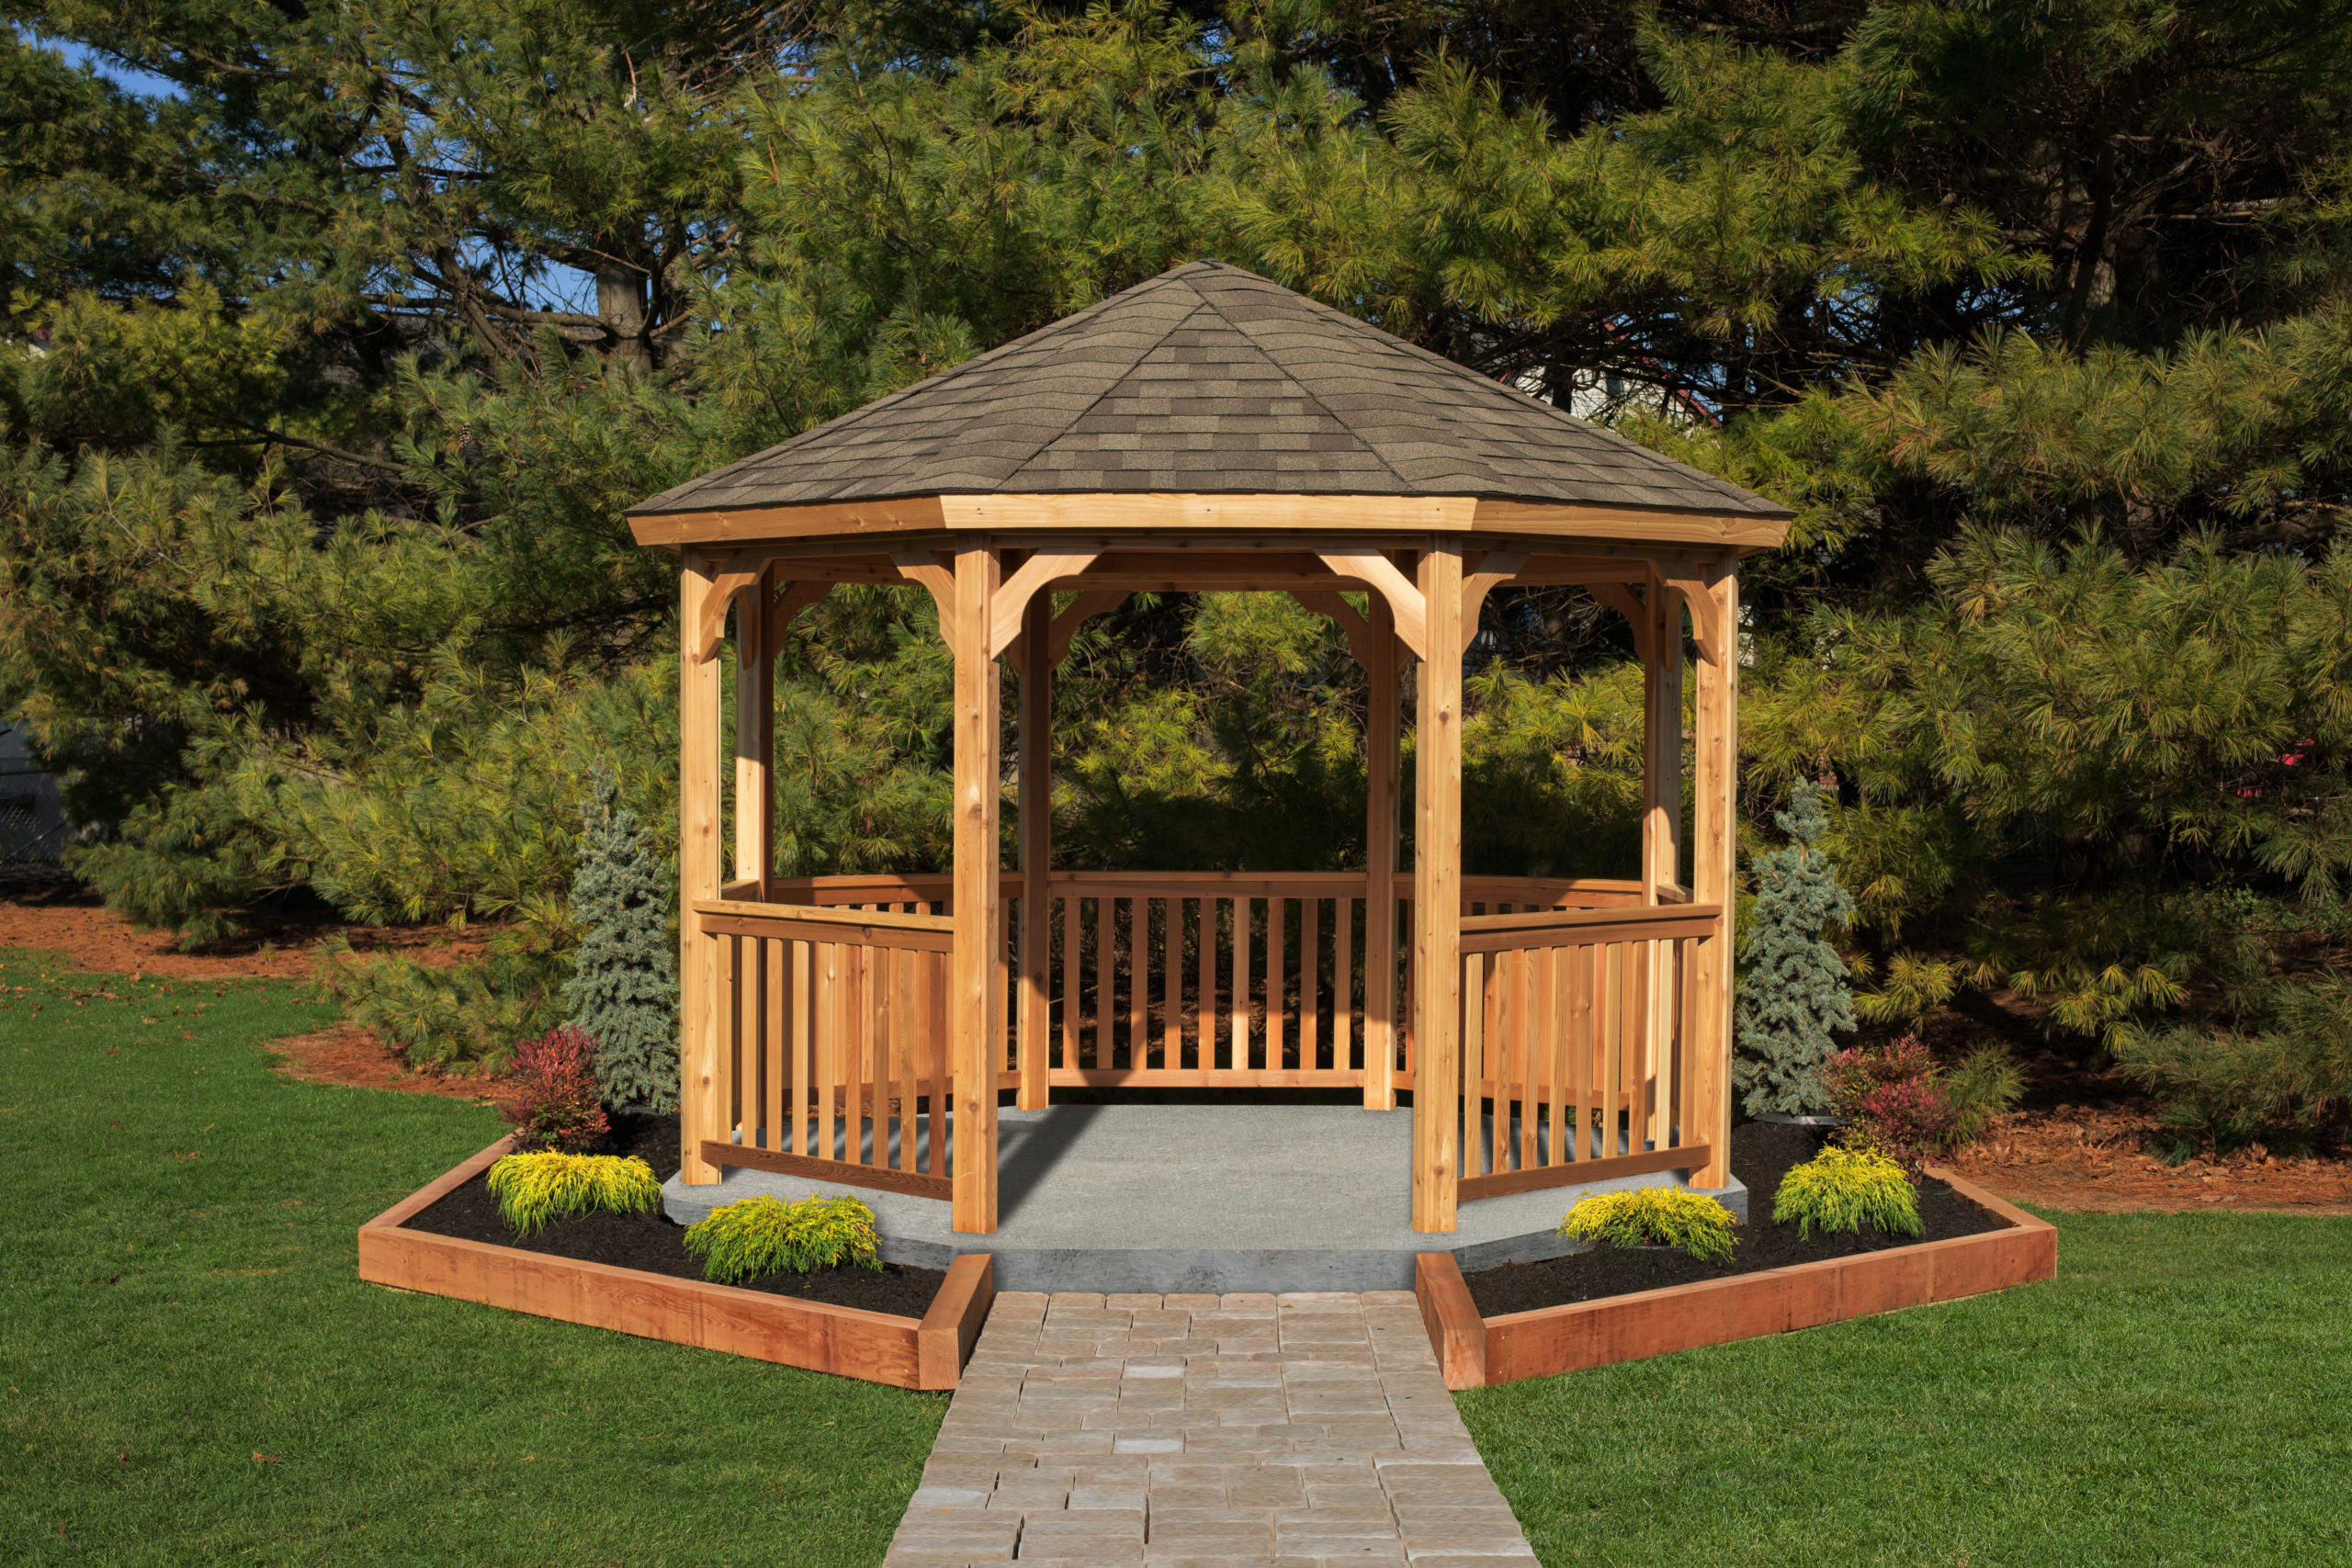 How to Select a Top Quality Gazebo Easily